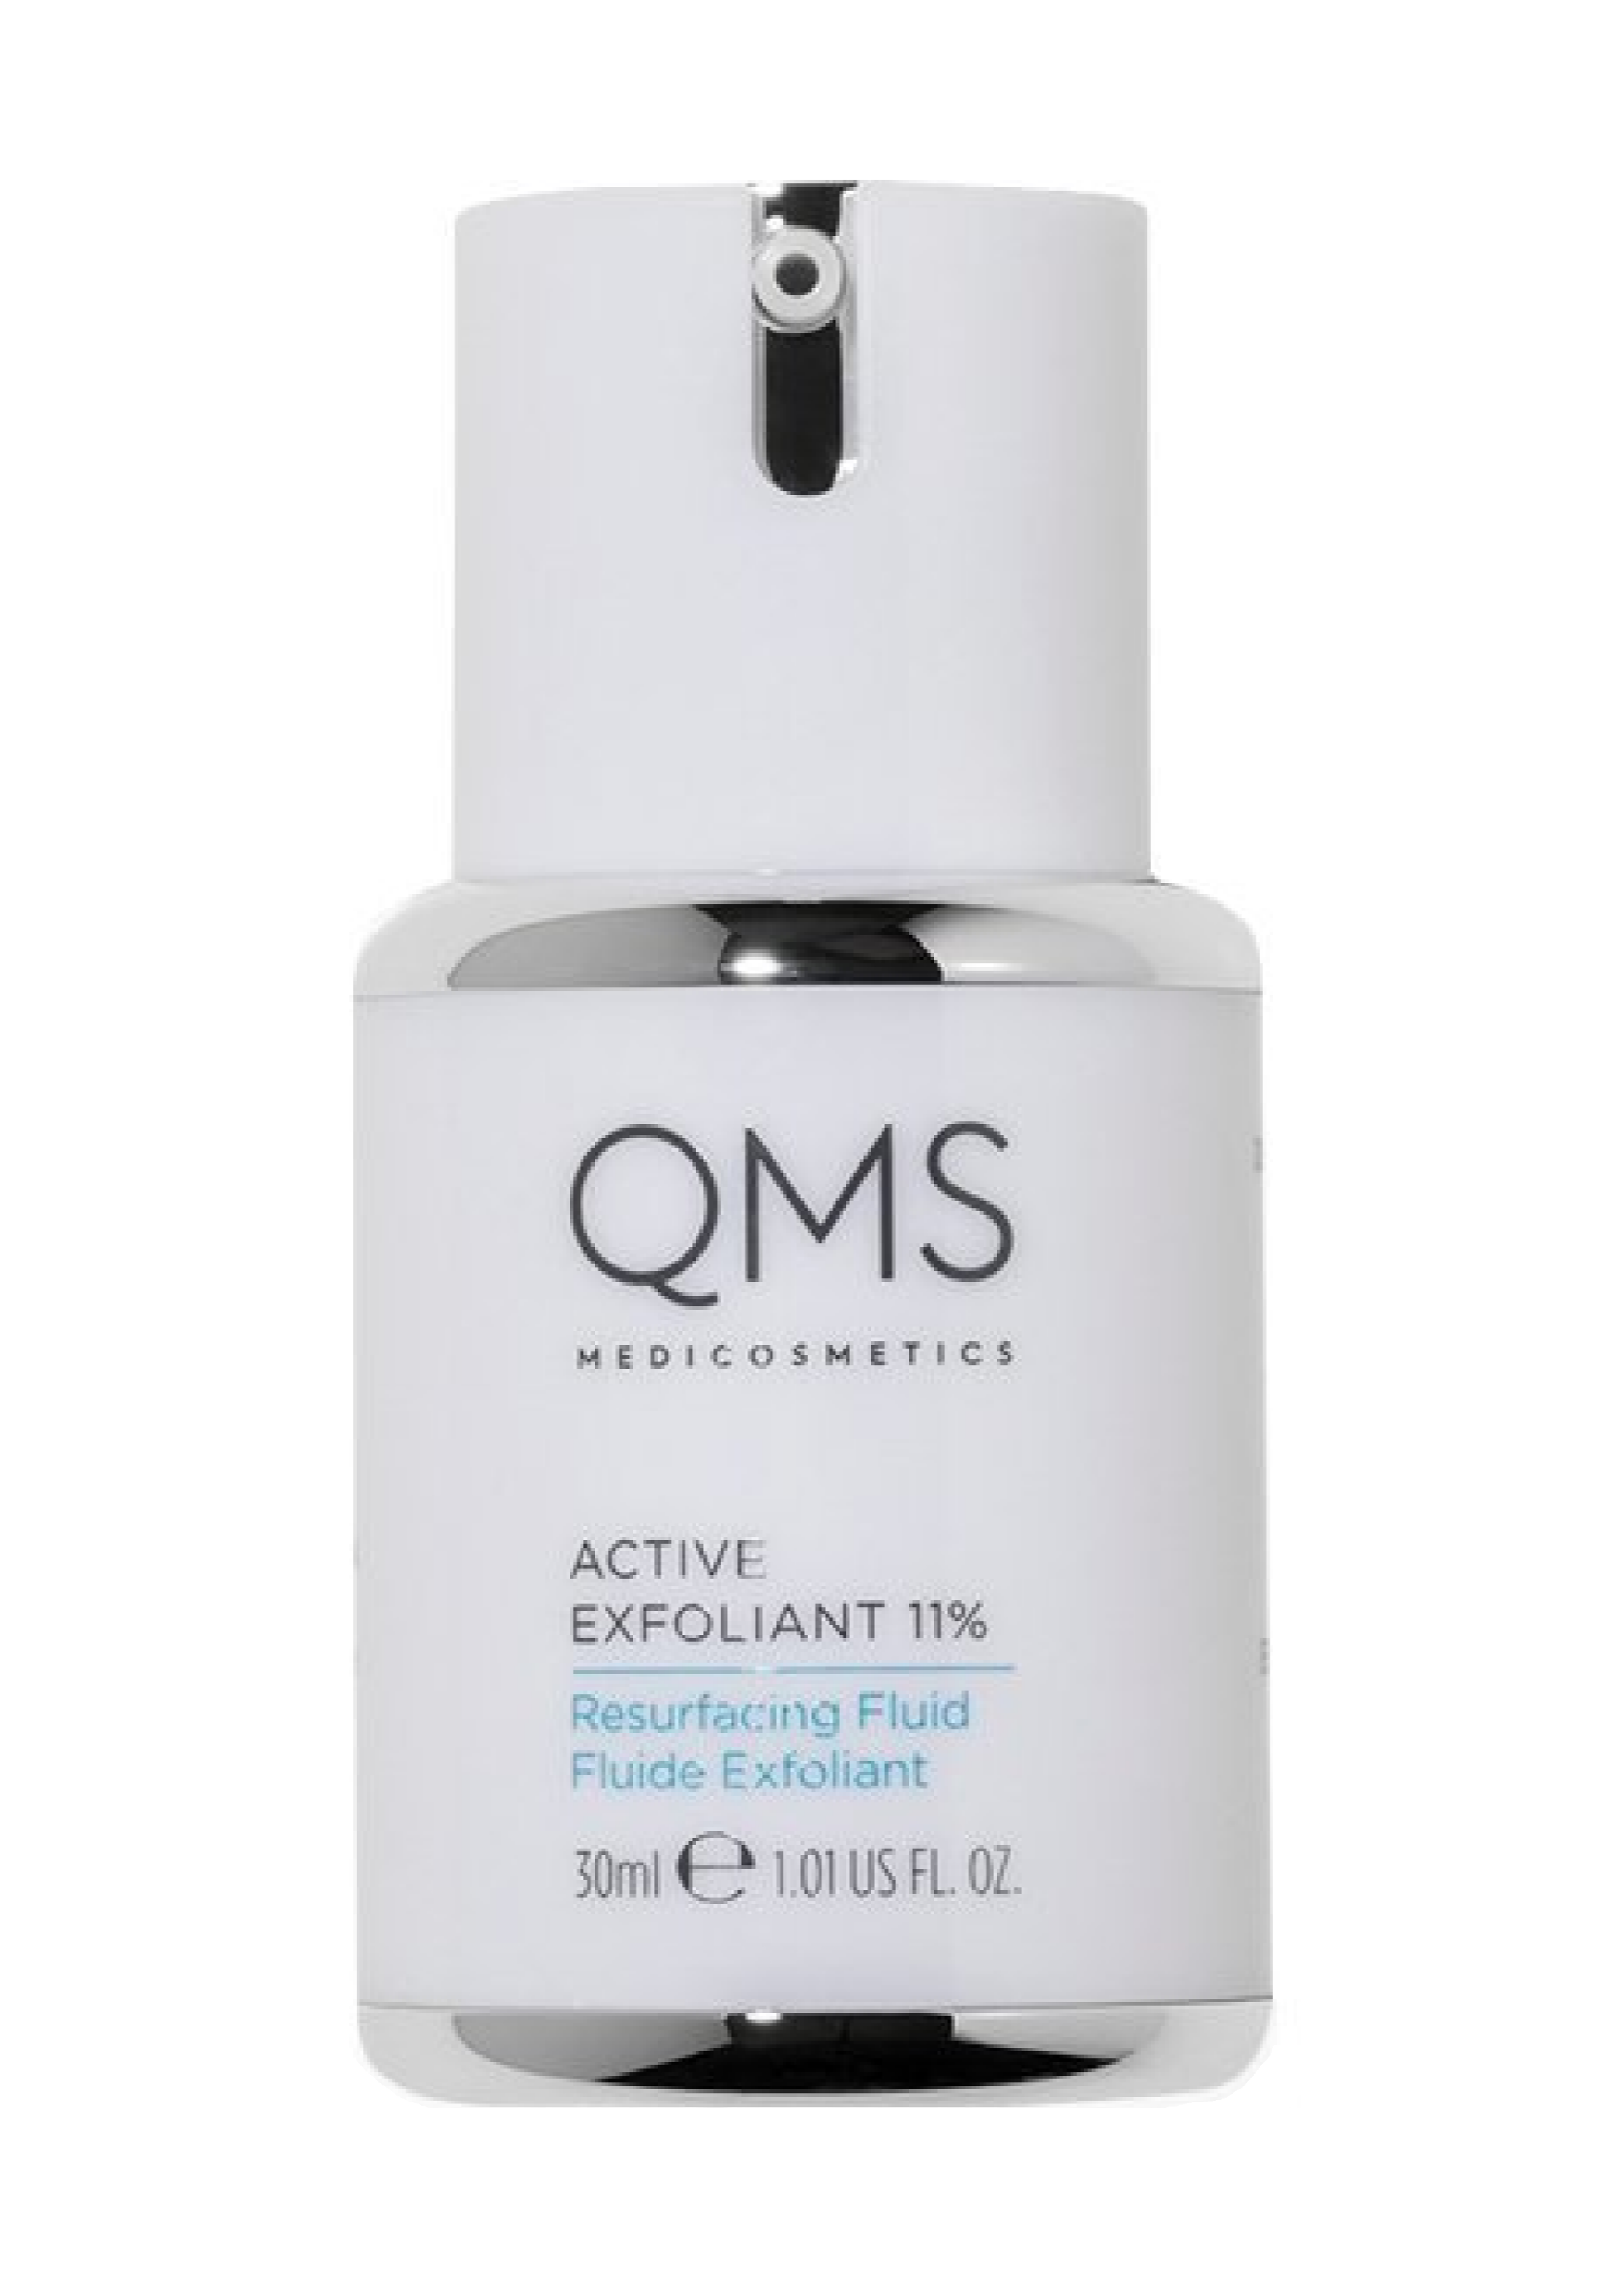 QMS®Active Exfoliant 11% Resurfacing Fluid